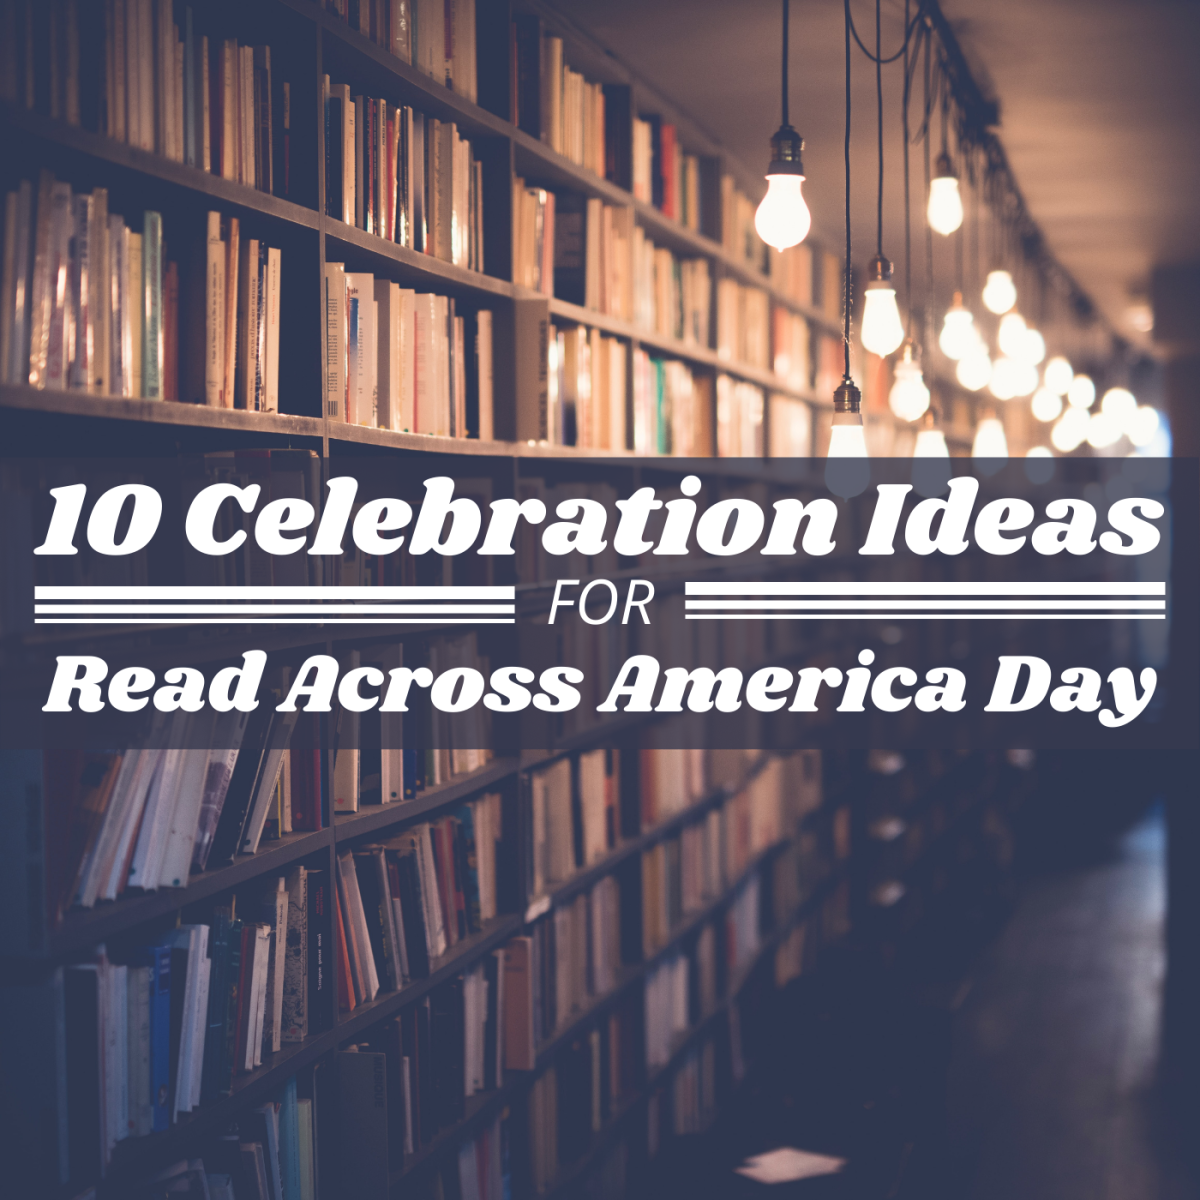 March 2nd is Read Across America Day. How will you celebrate?